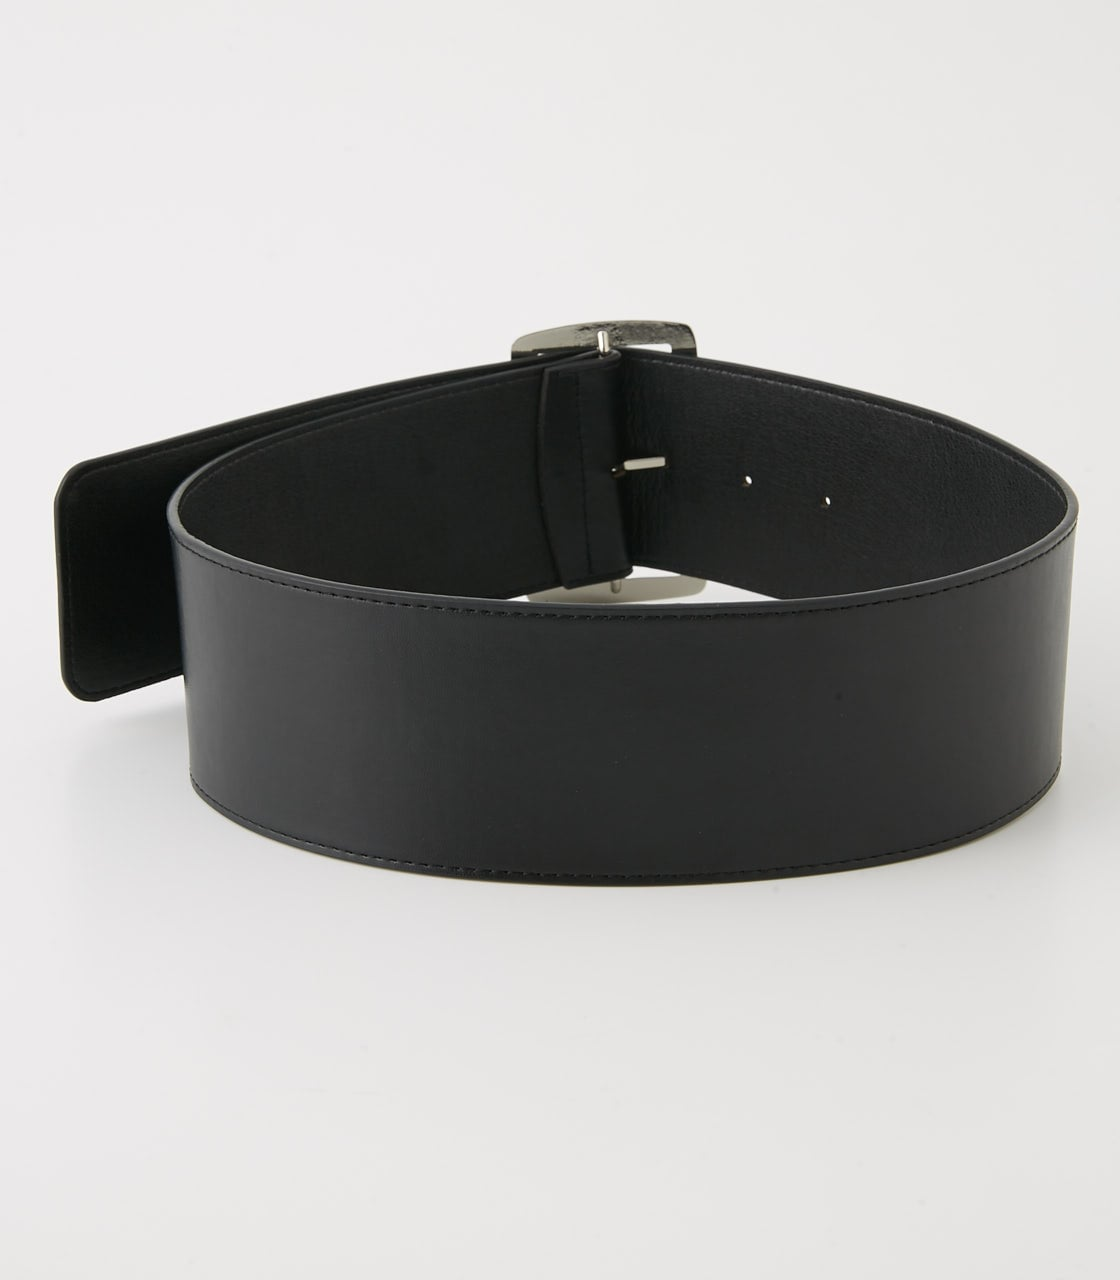 【AZUL BY MOUSSY】SQUARE BUCKLE WIDE BELT 詳細画像 BLK 3